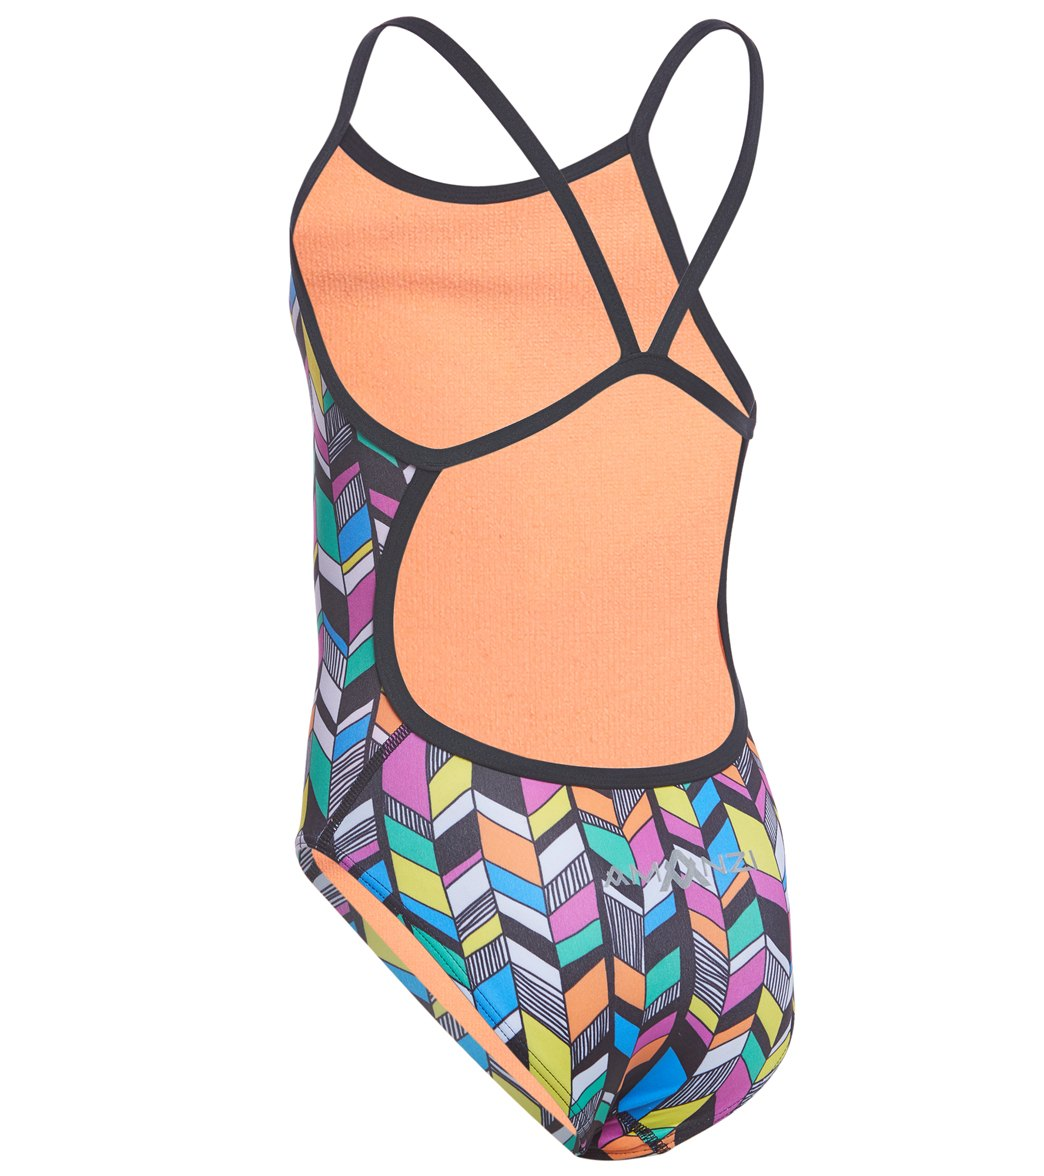 f159fd5c84b86 Amanzi Girls  Trellis One Piece Swimsuit at SwimOutlet.com - Free ...